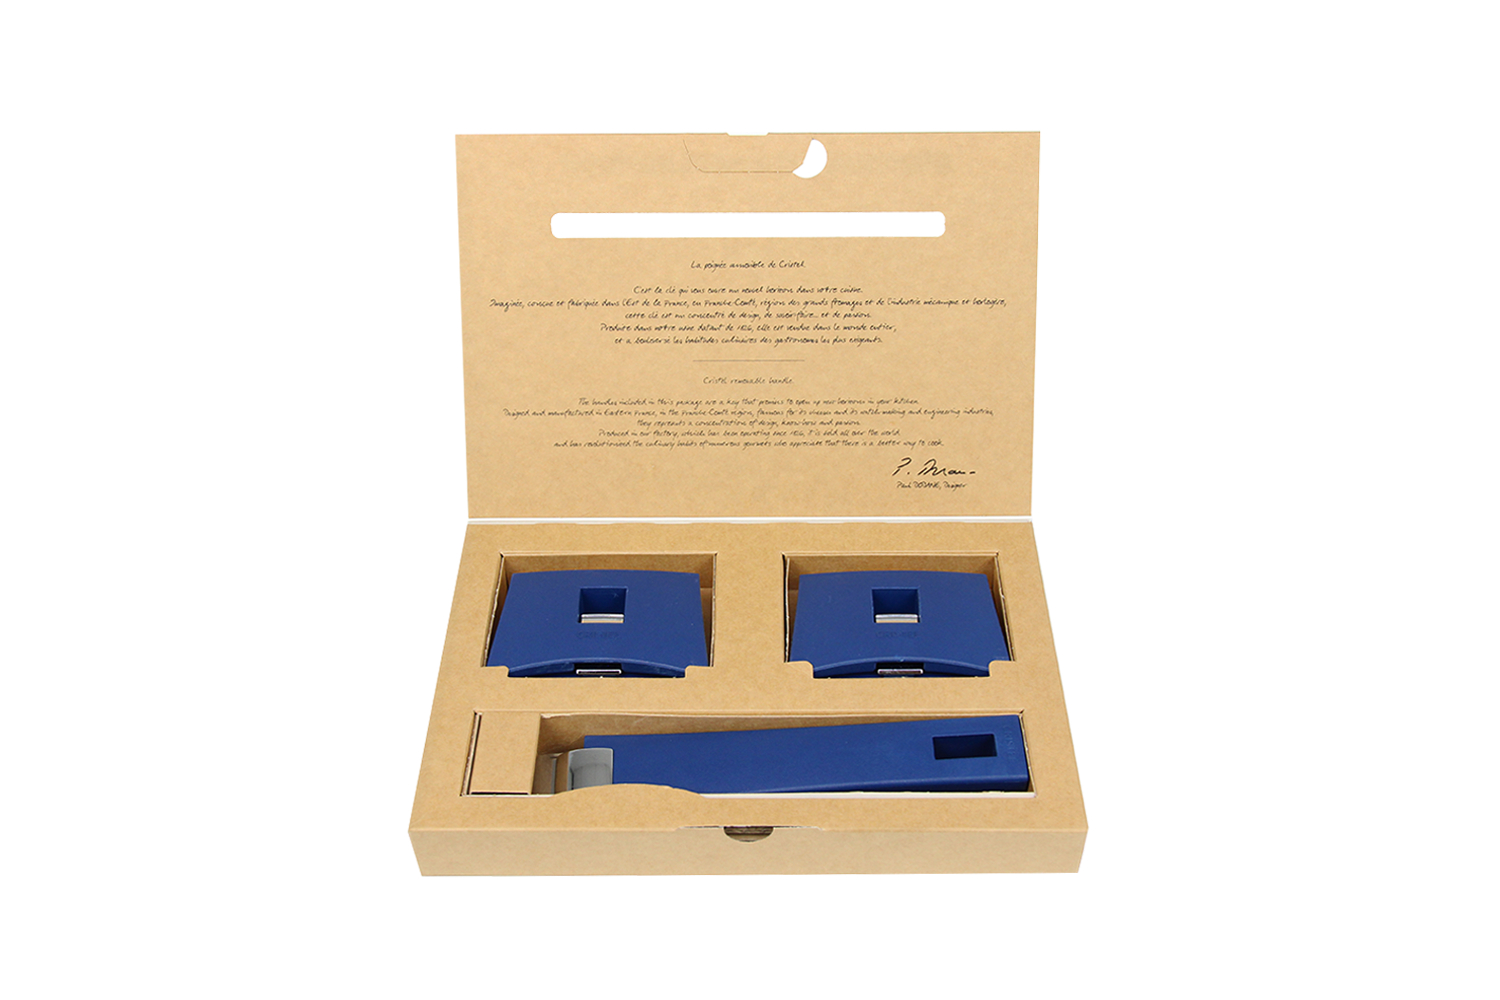 Cristel Mutine Set of 3 Handles, 1 long and 2 Sides - Blue Ink